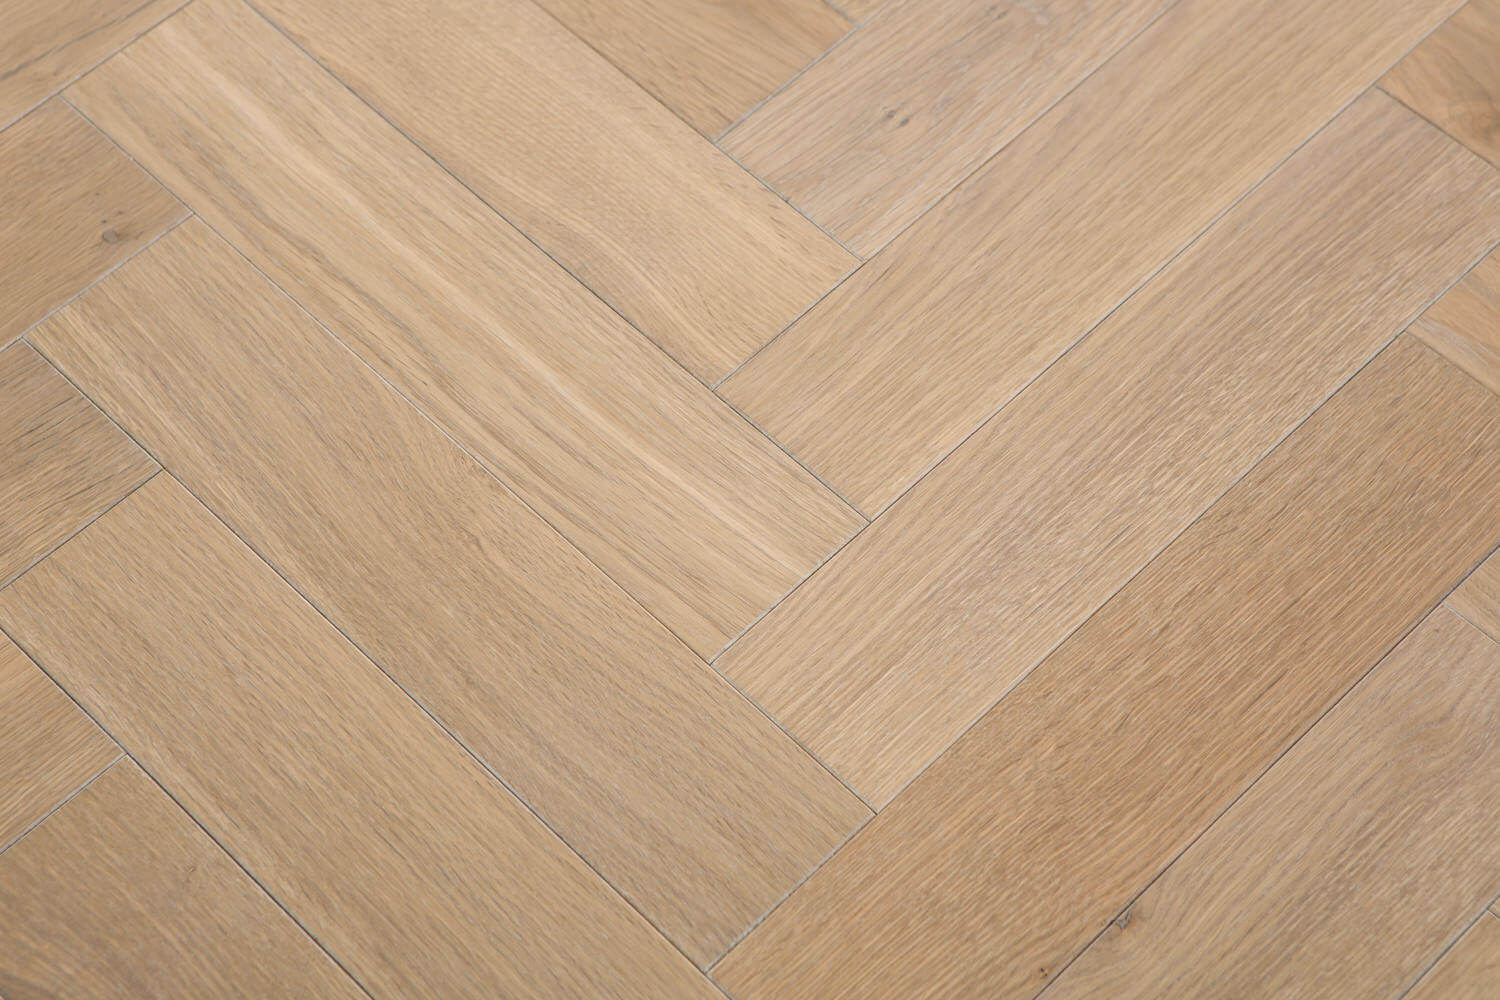 3 Oak Floor Product Double Fumed Parquet